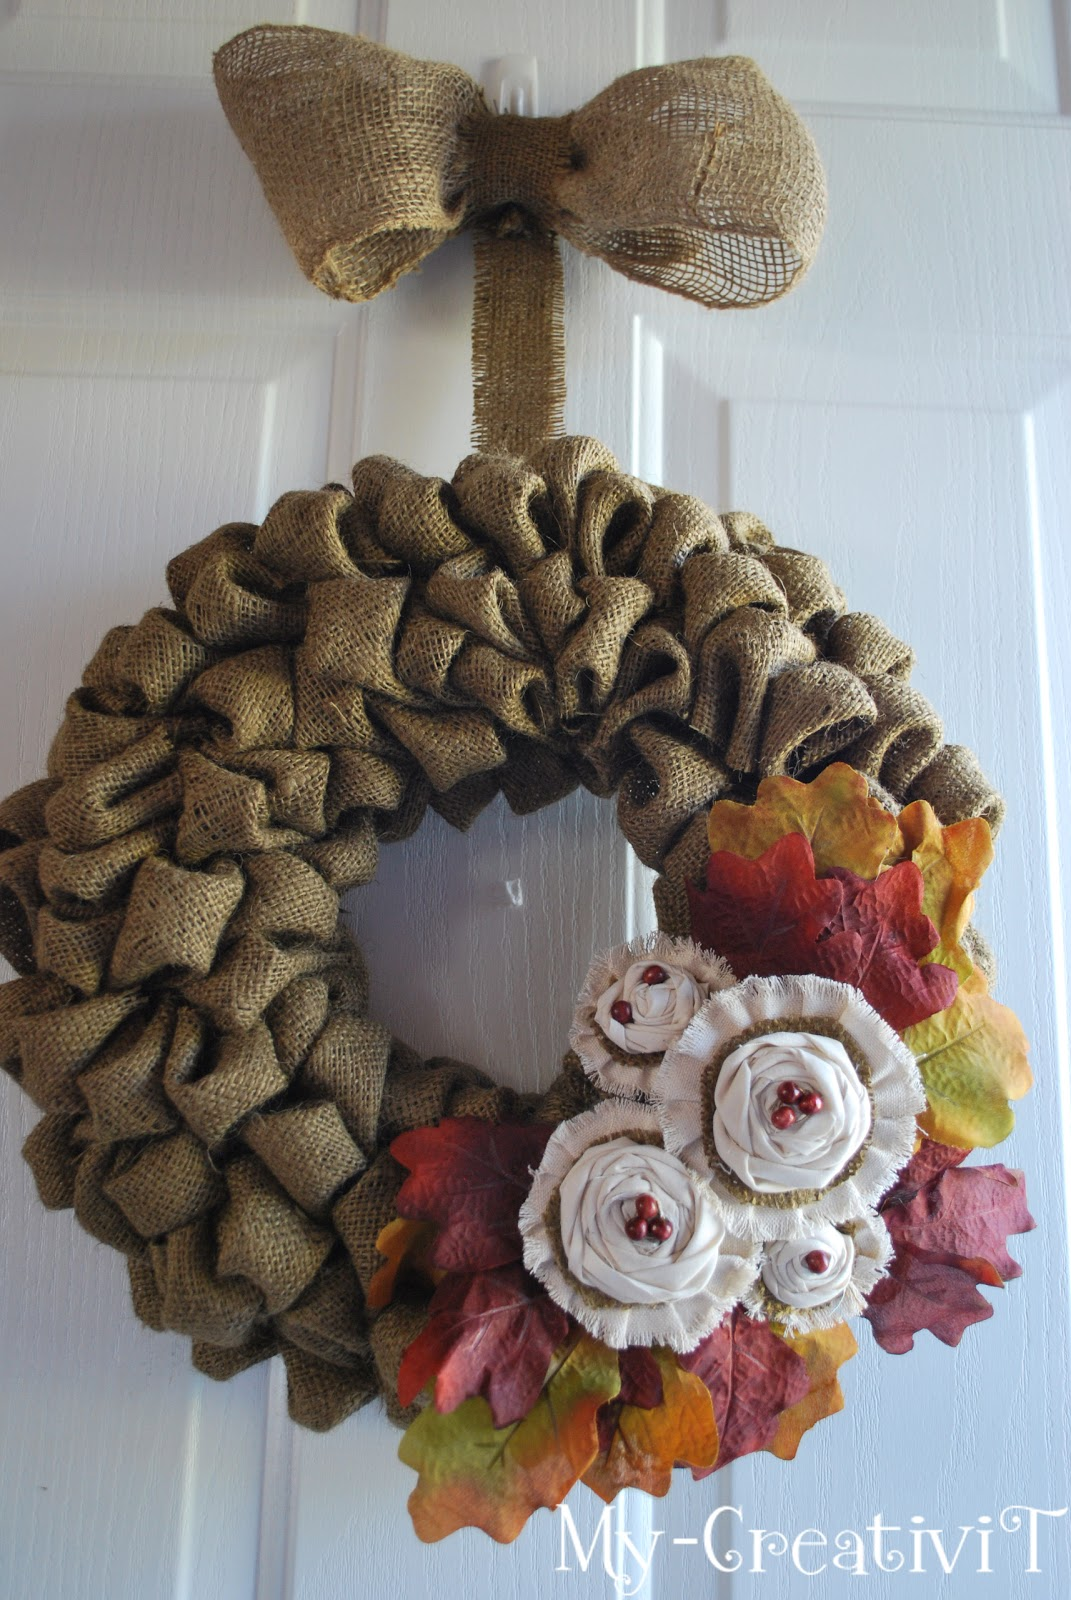 My creativit diy burlap wreath for What to make with burlap